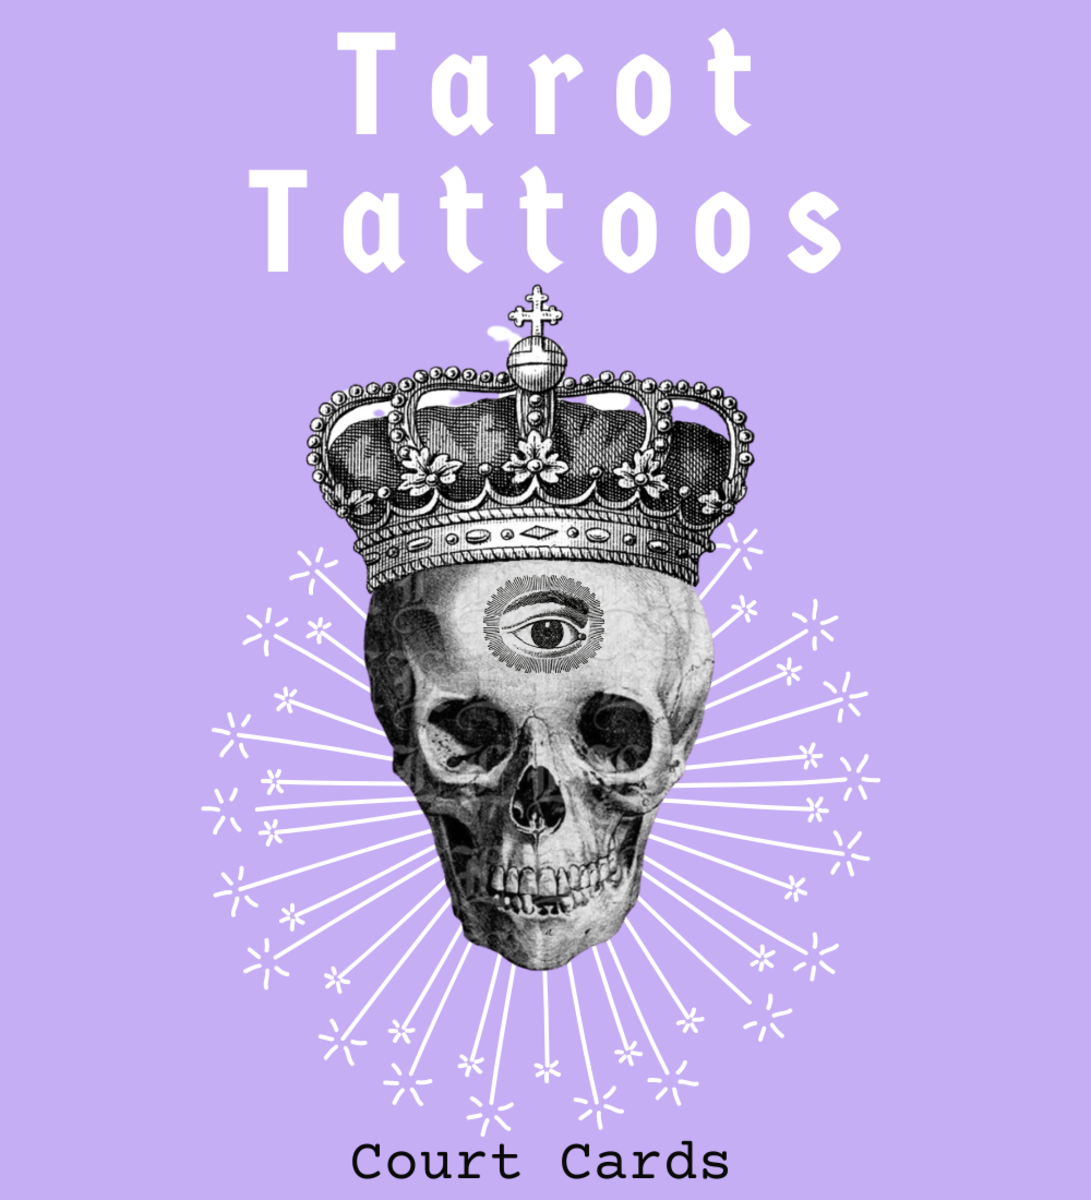 tarot-card-tattoo-design-ideas-and-meanings-the-royalty-symbols-or-court-cards